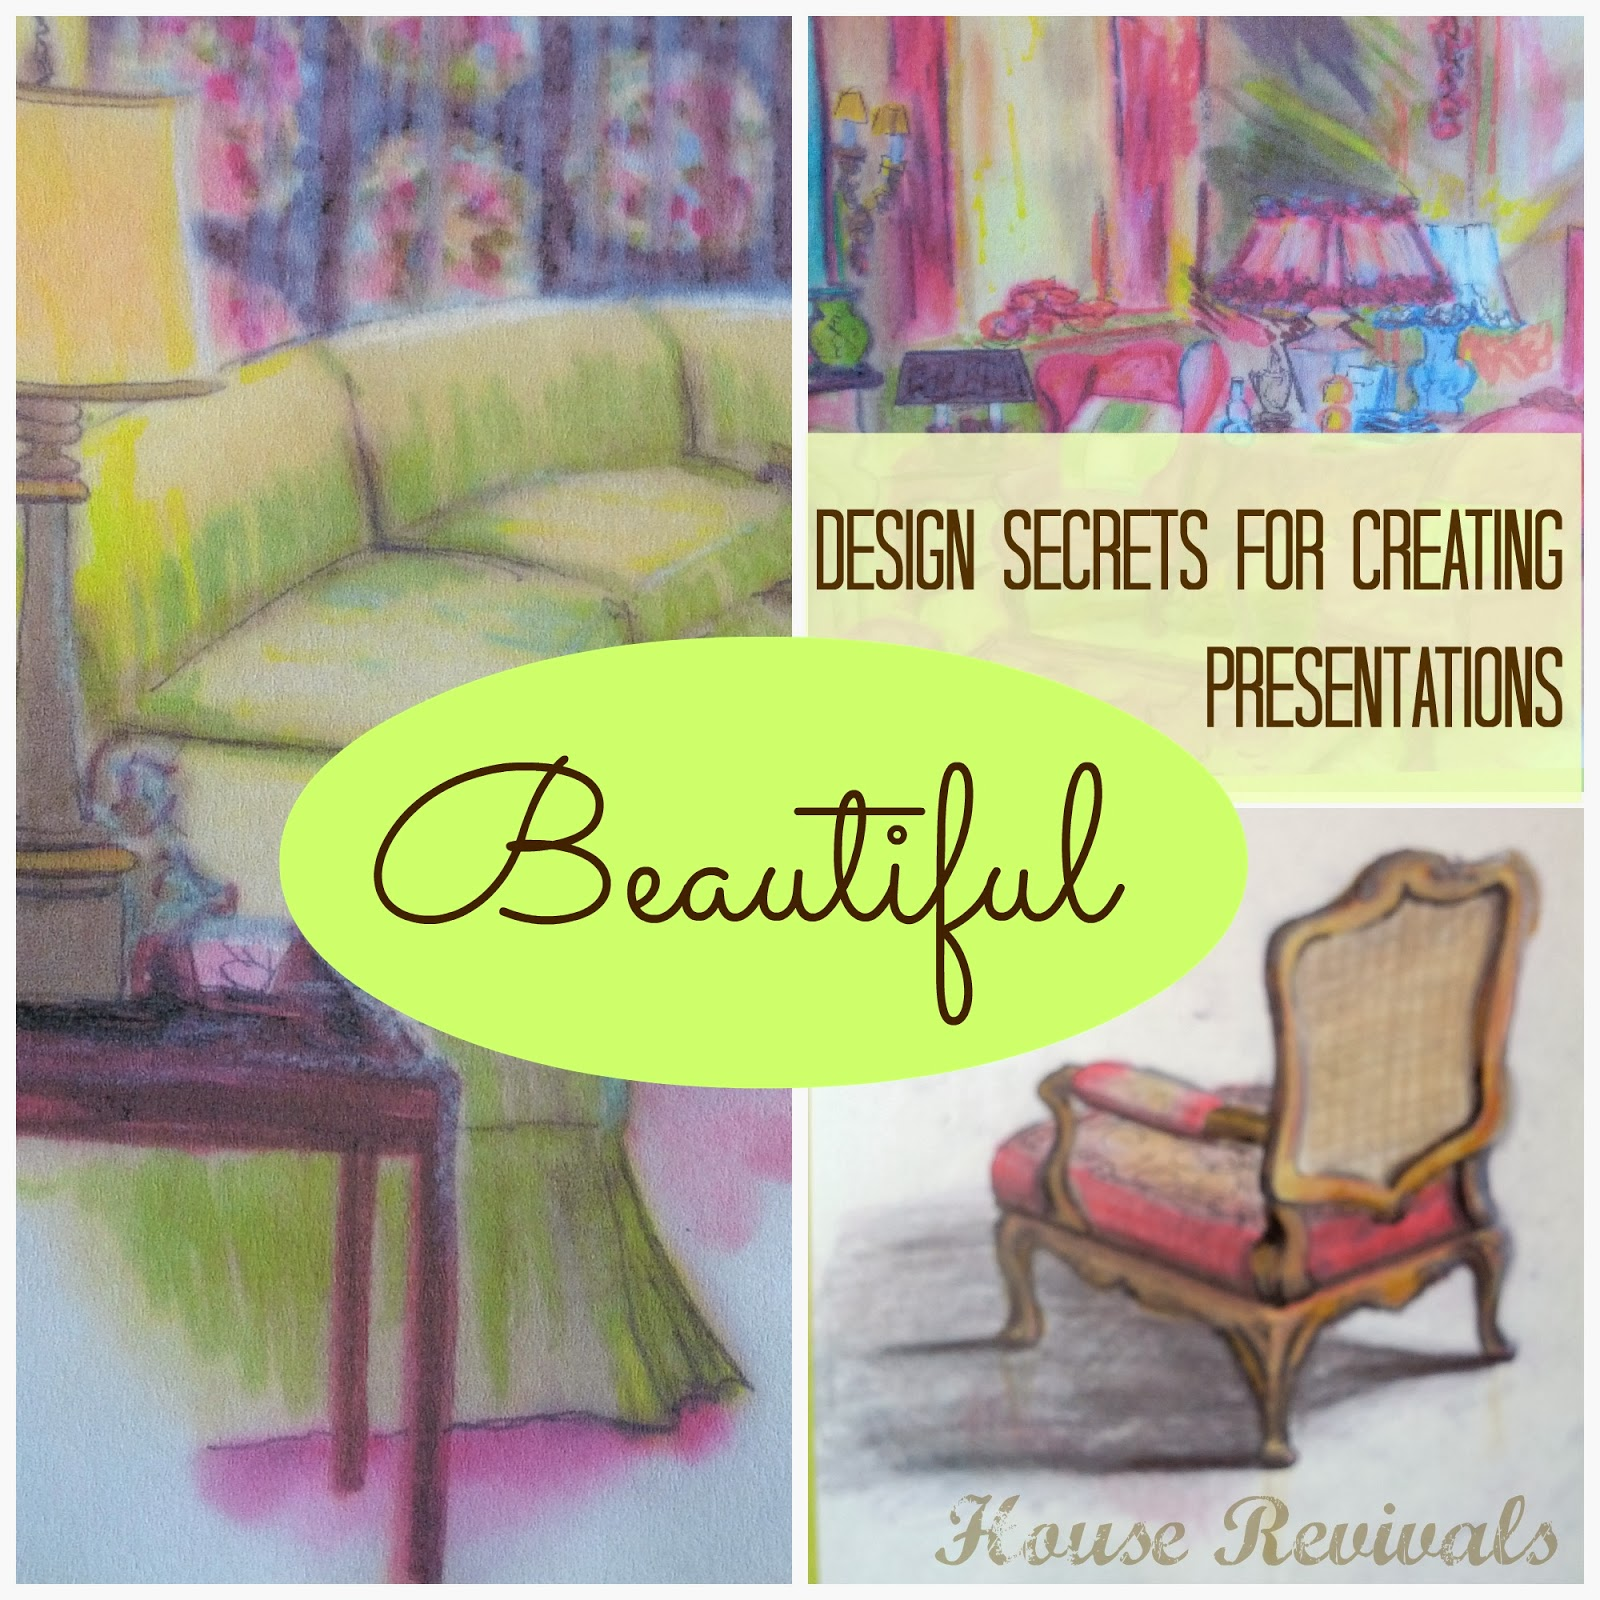 House Revivals: Design Secrets for Creating Beautiful Presentations